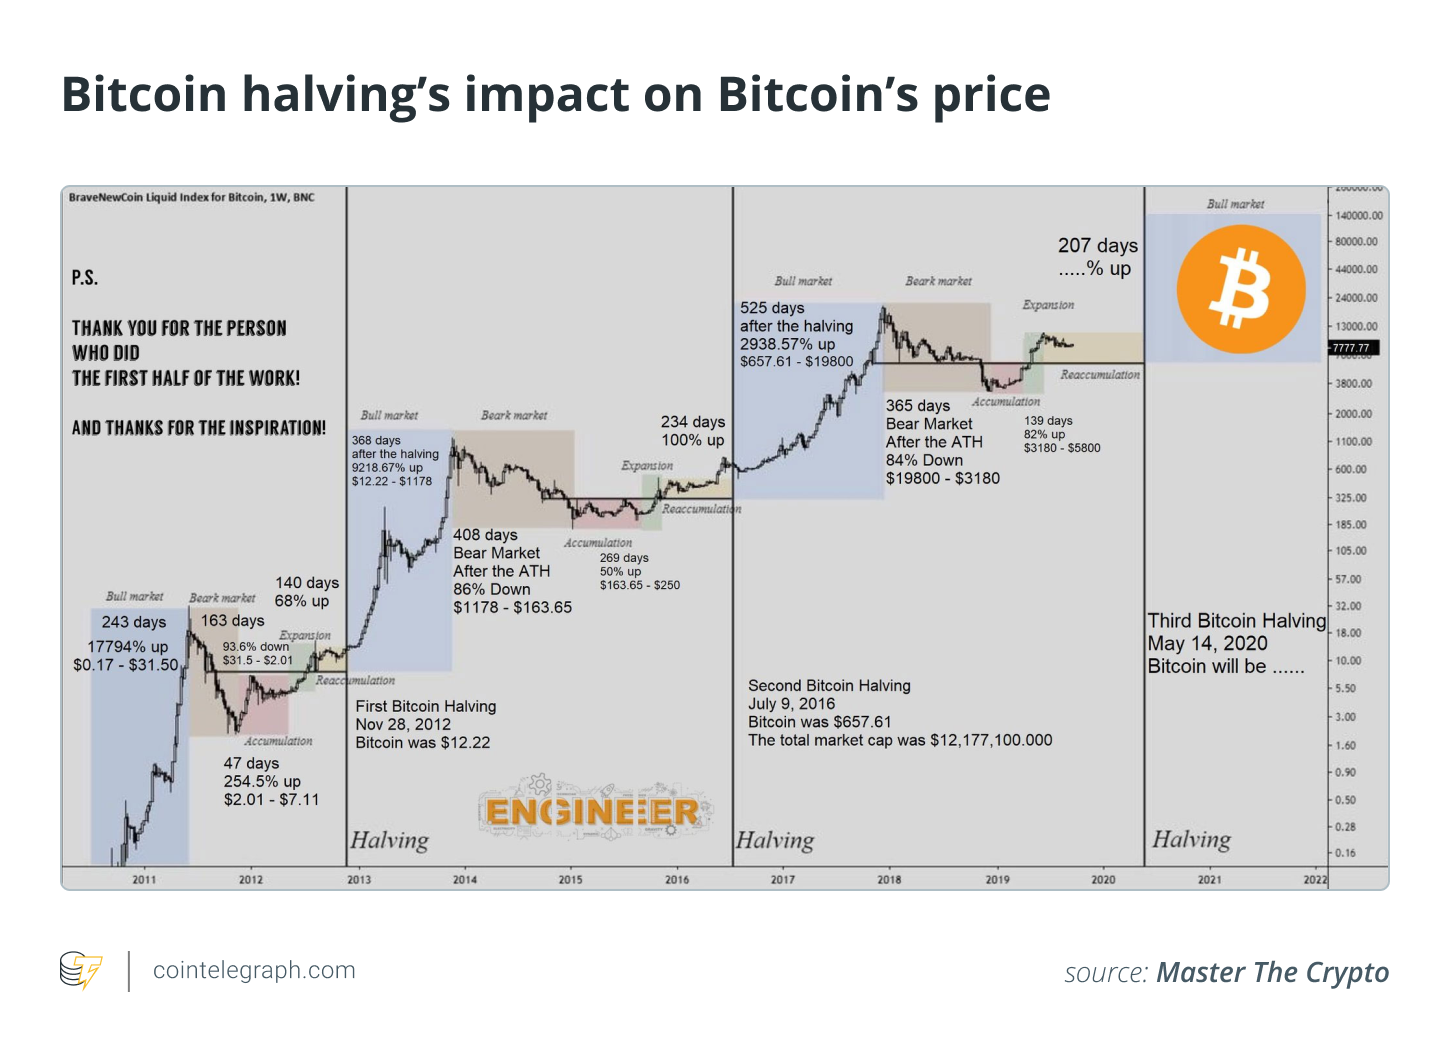 Why am I cynical about Bitcoin halving?